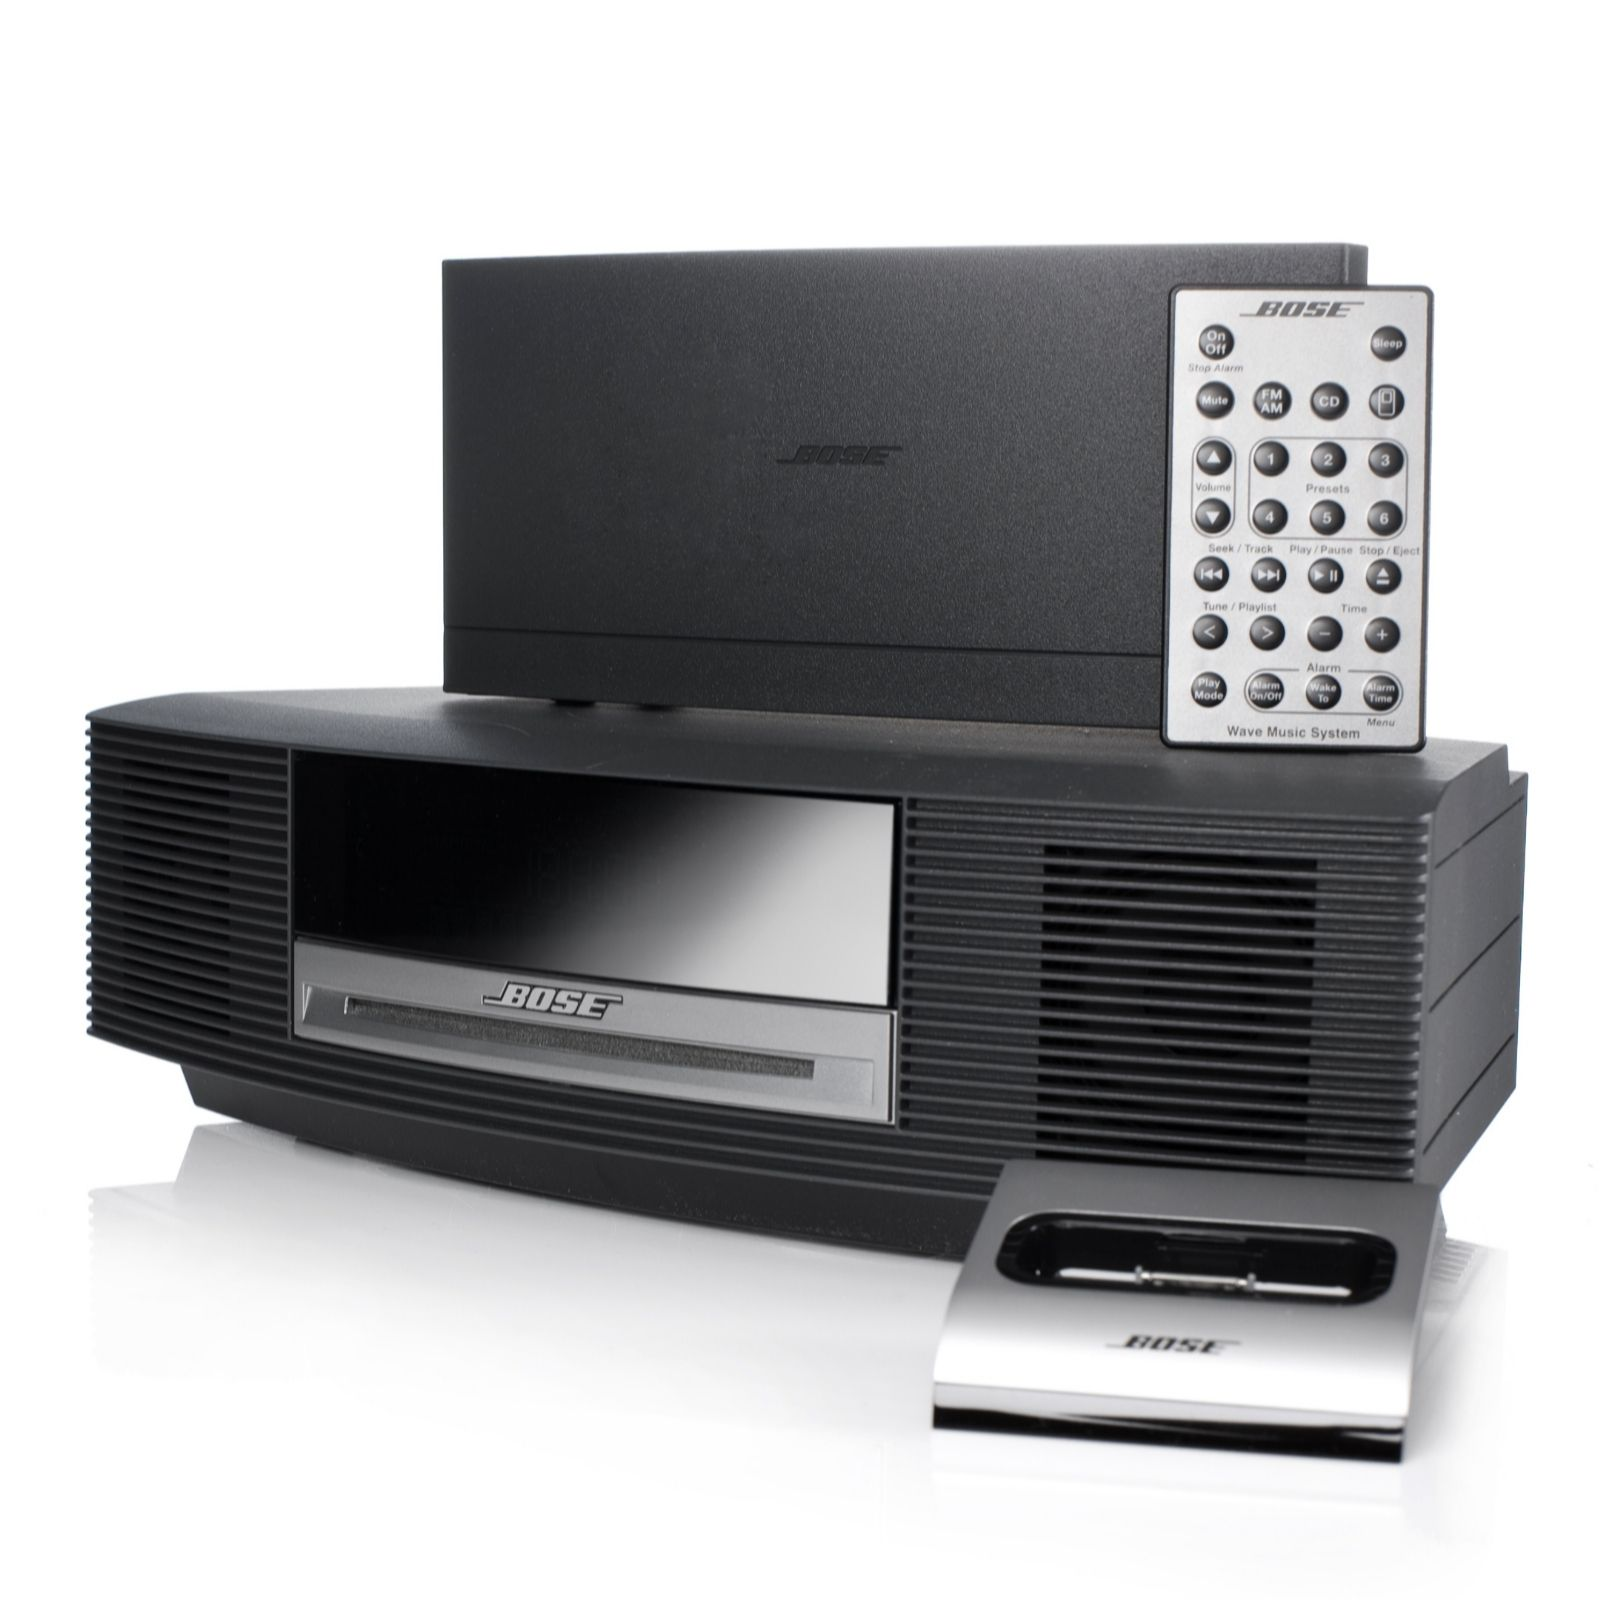 bose wave music system with dab radio ipod connect dock remote rh qvcuk com Bose Wave Radio System Bose Wave Systems Enclosure Plans